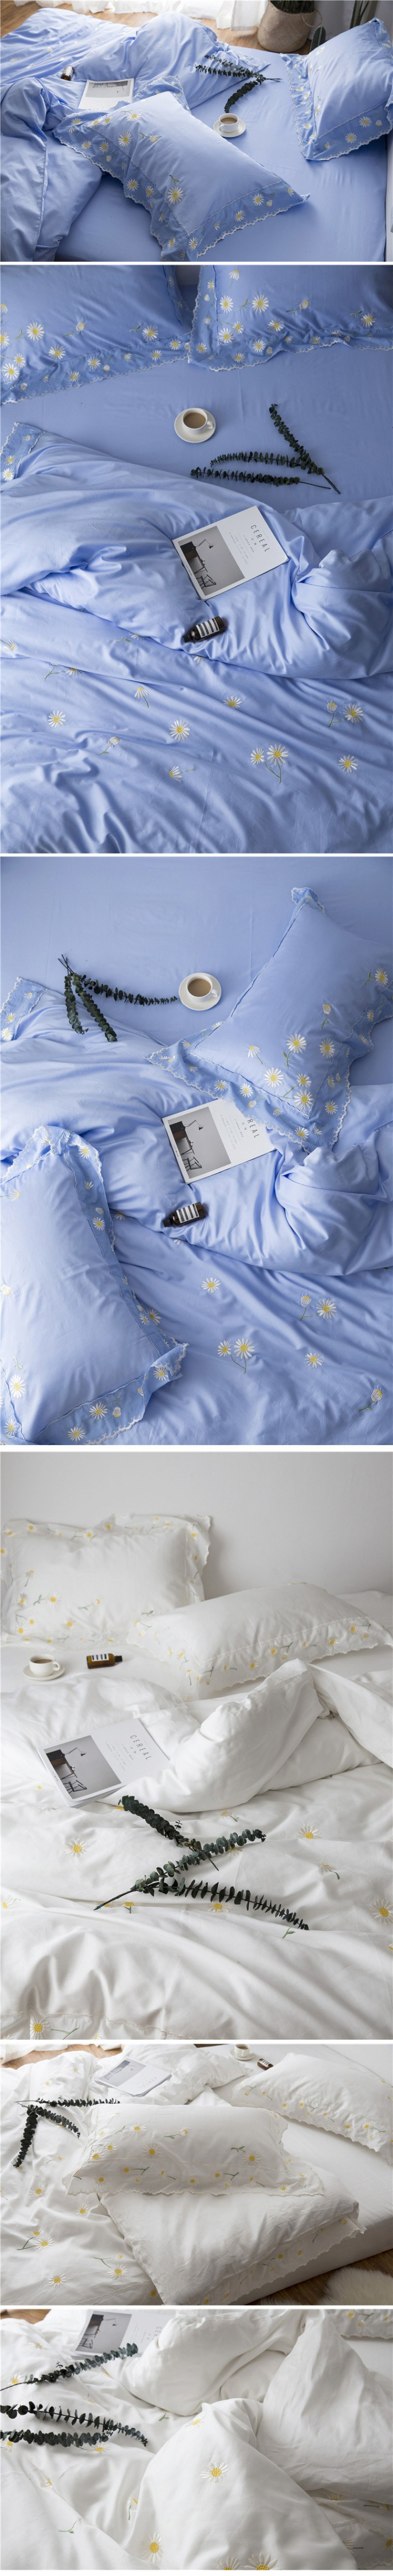 Wedding bedding sets king size 60s satin long staple cotton bed sheets romantic lace embroidery duvet cover bed linen 4